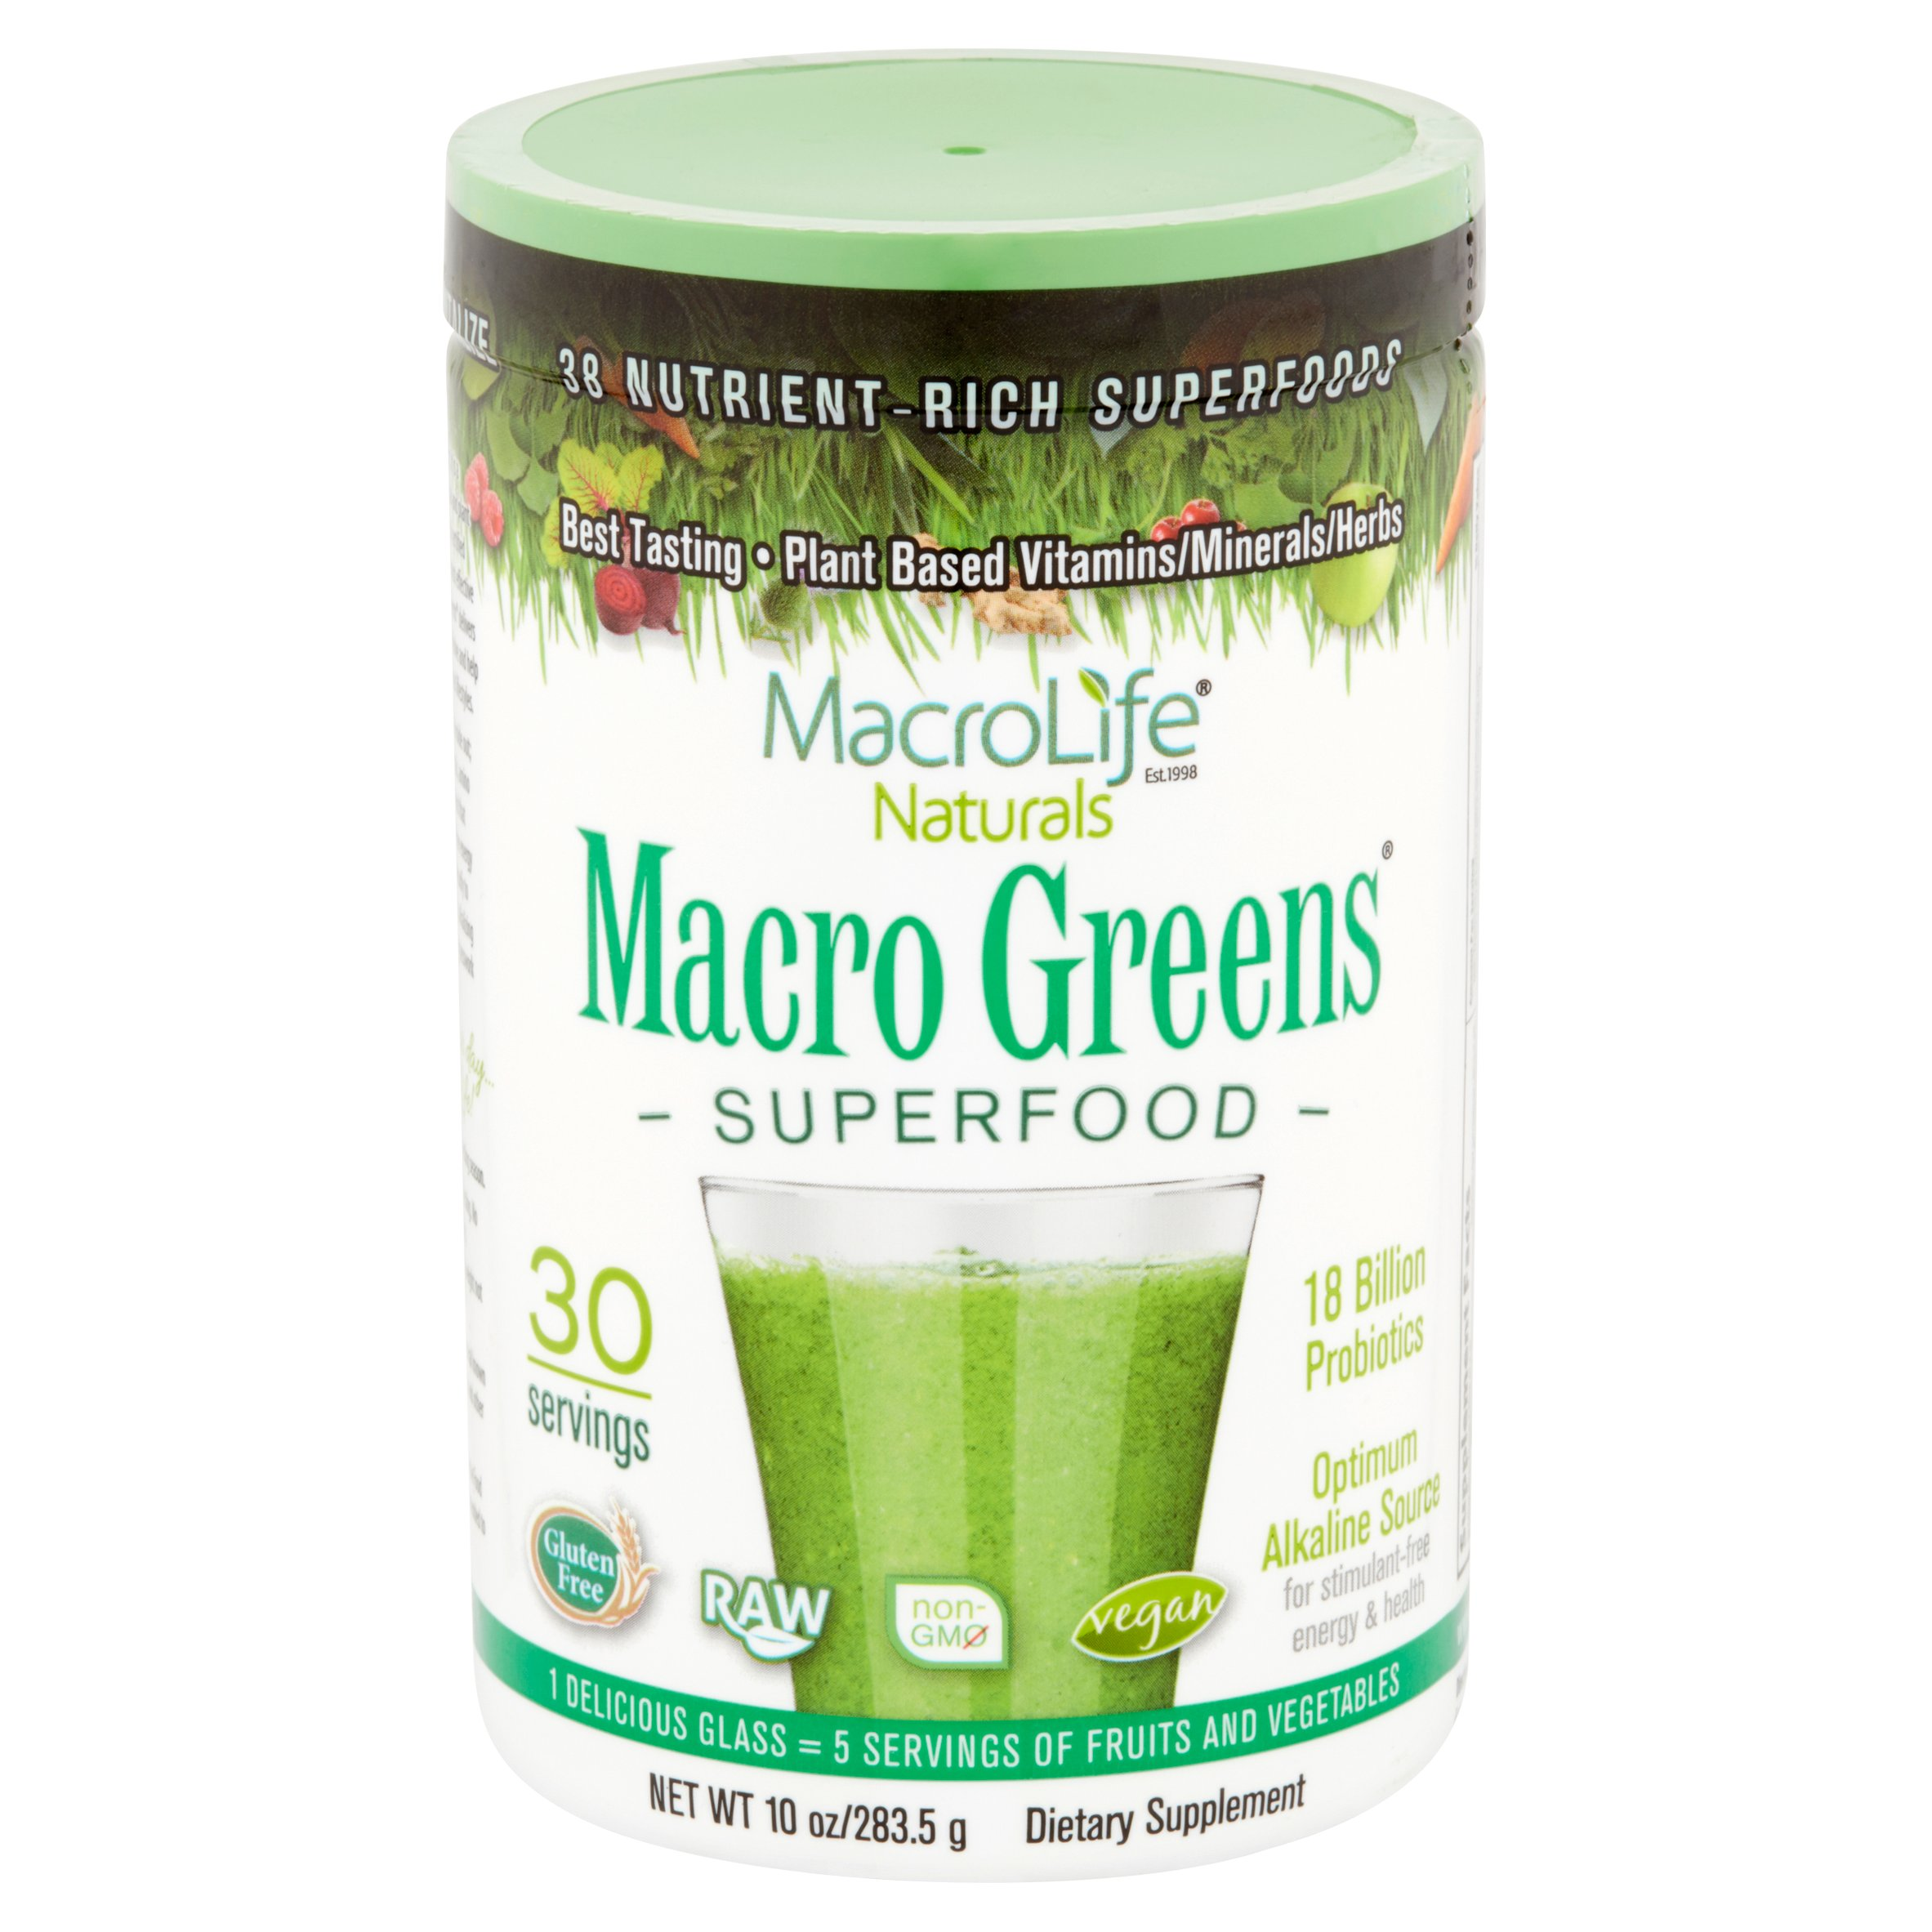 MacroLife Naturals Macro Greens Superfood Powder, 10.0 Oz